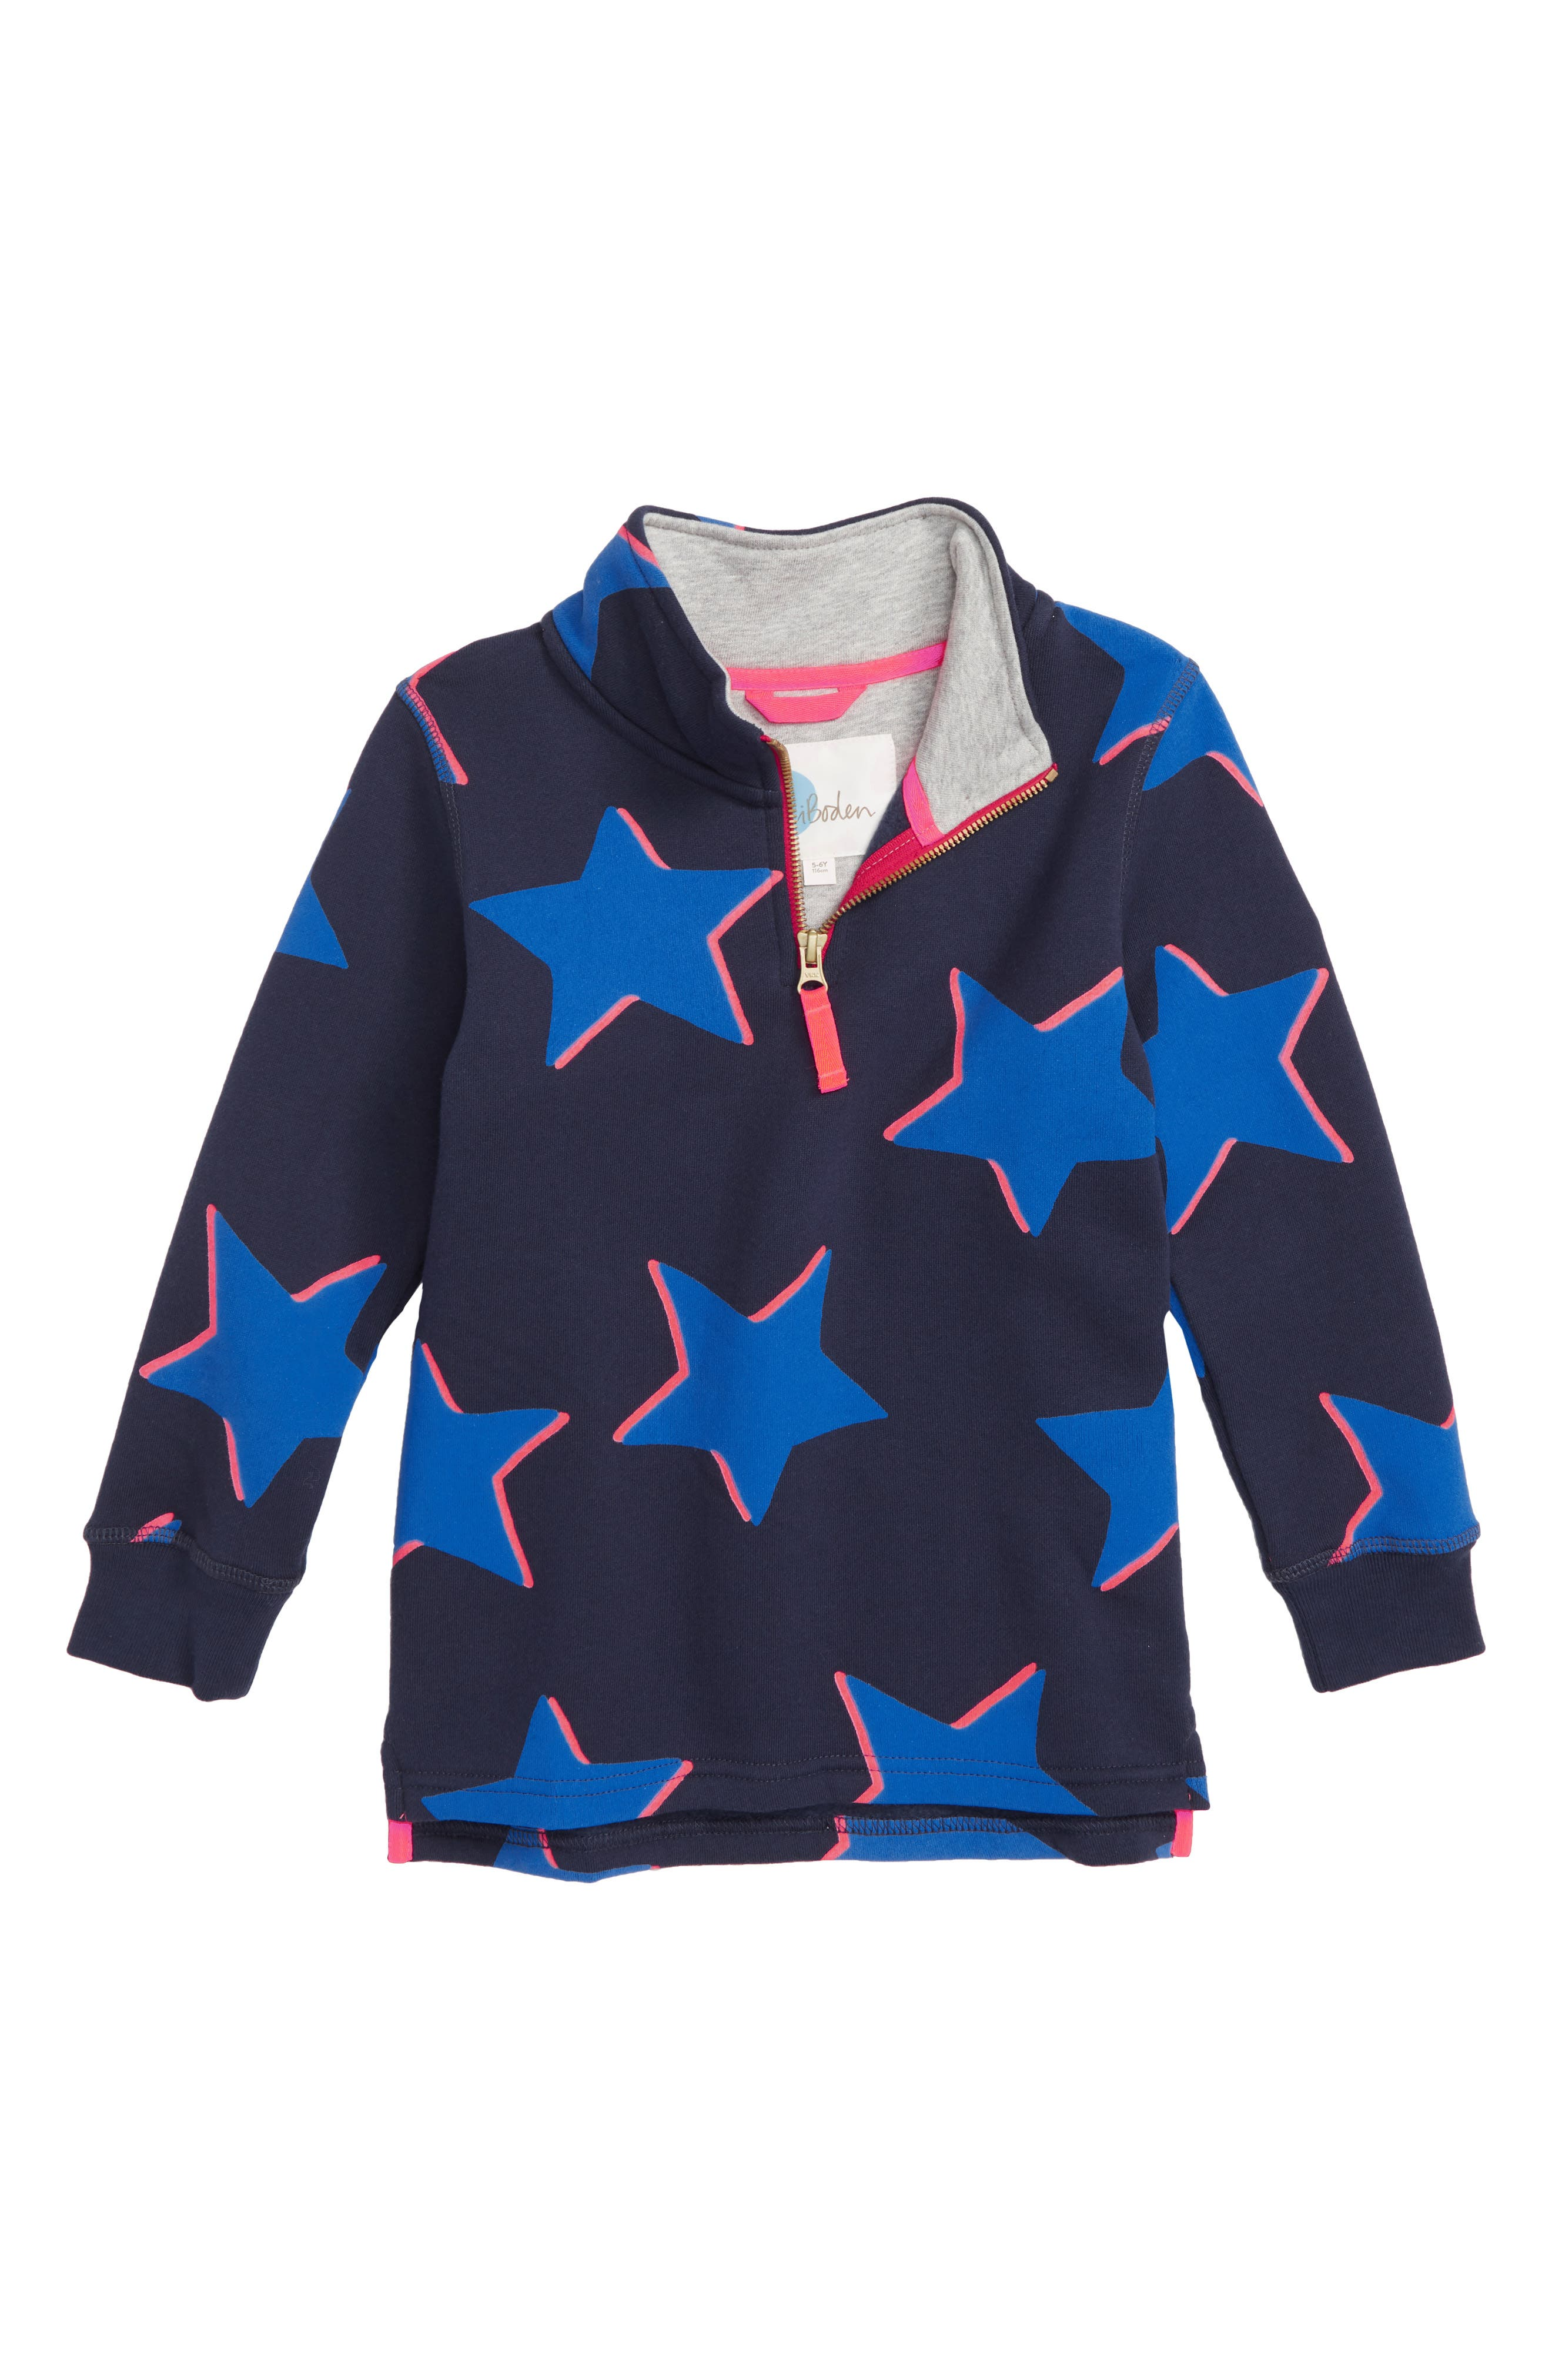 Shadow Star Half Zip Sweatshirt,                         Main,                         color, 414